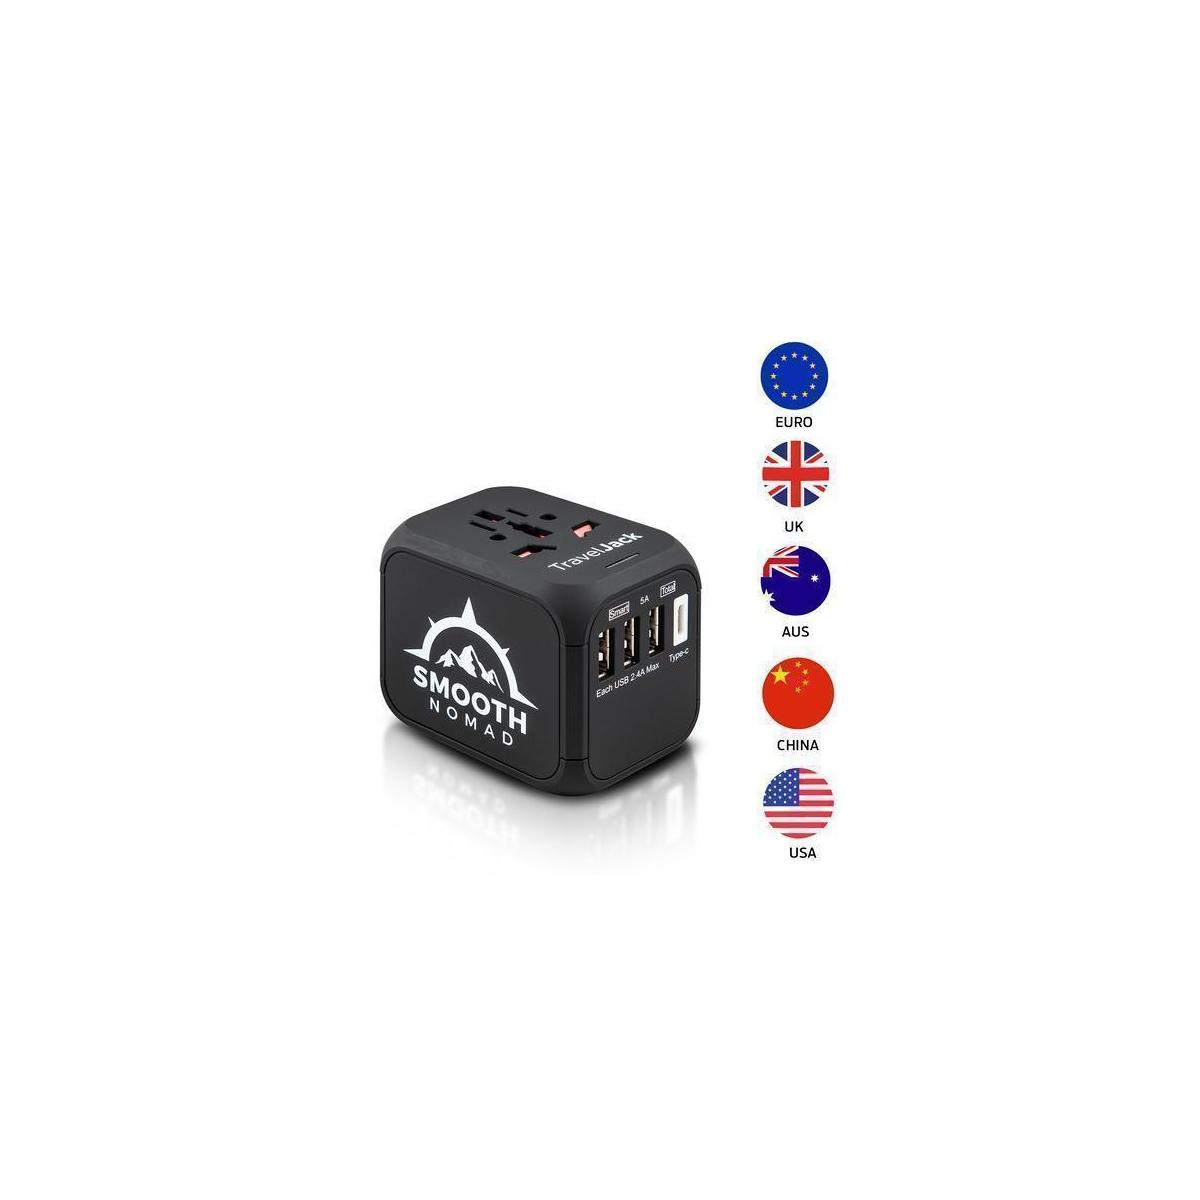 75% OFF International Travel Adapter by Smooth Nomad